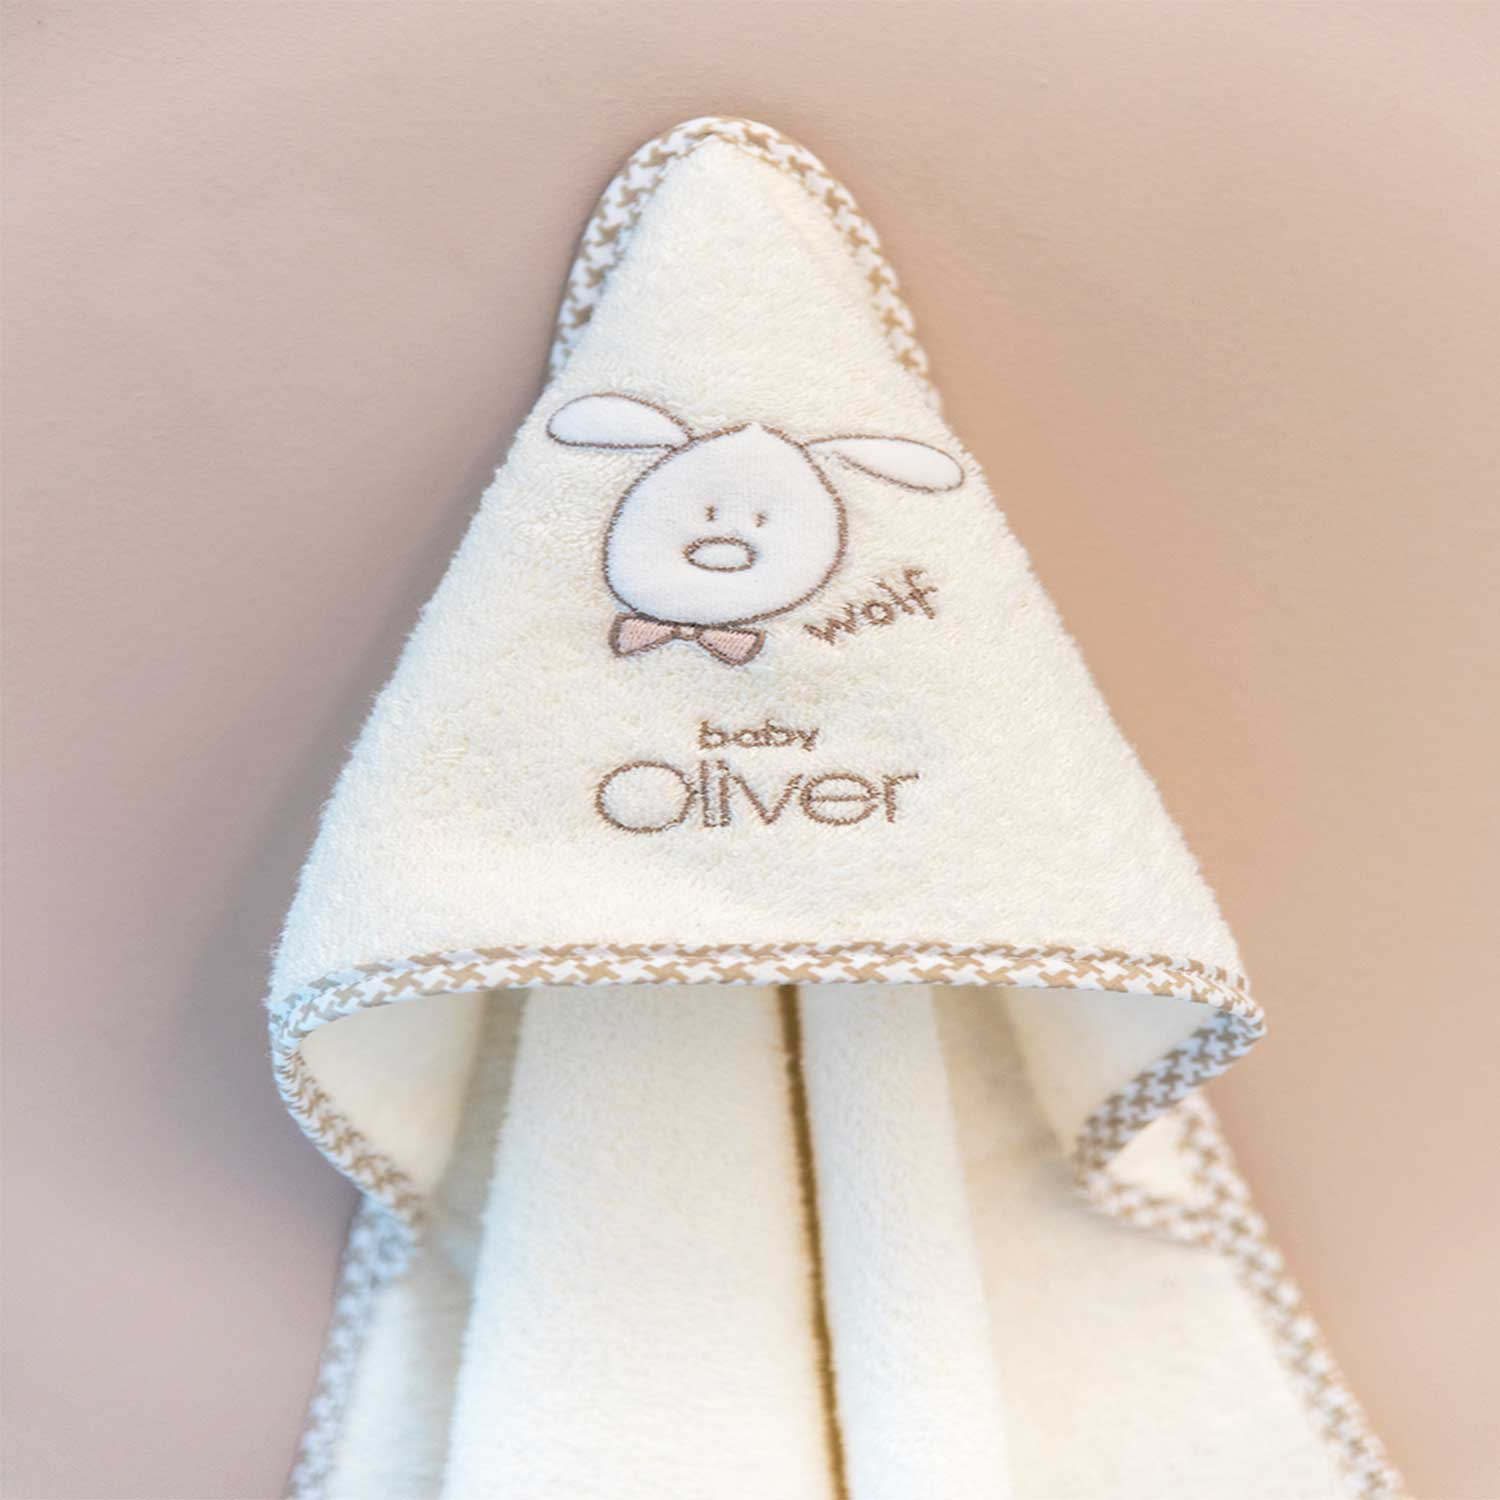 Κάπα Βρεφική Des.305 Mr. Wolf & Co. Beige Baby Oliver 0-2 ετών One Size